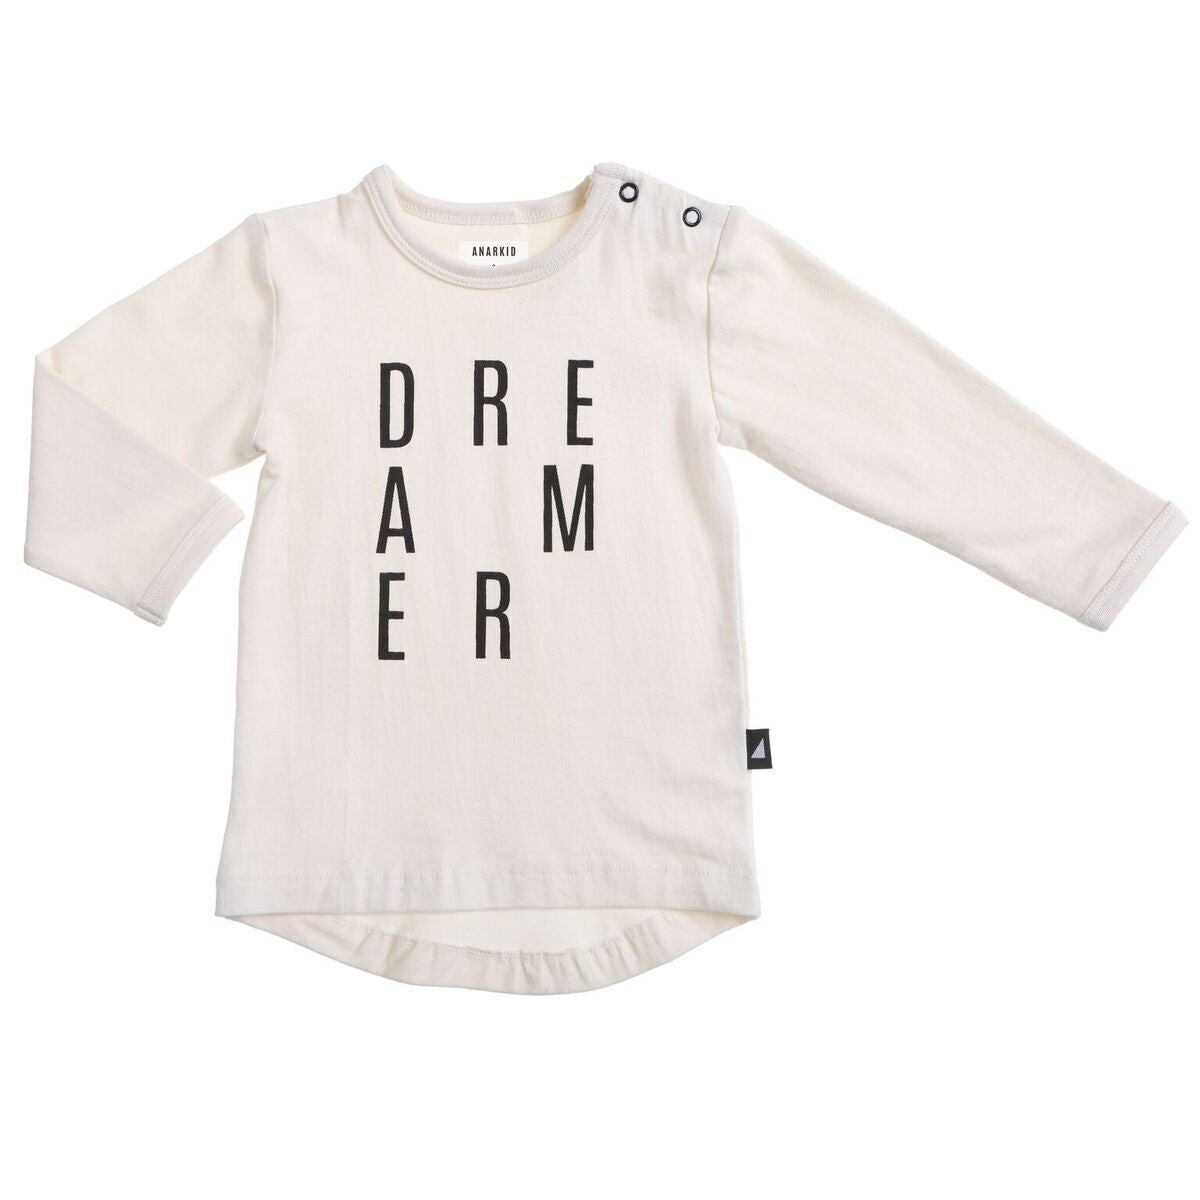 Anarkid Dreamer Organic Cotton Tee